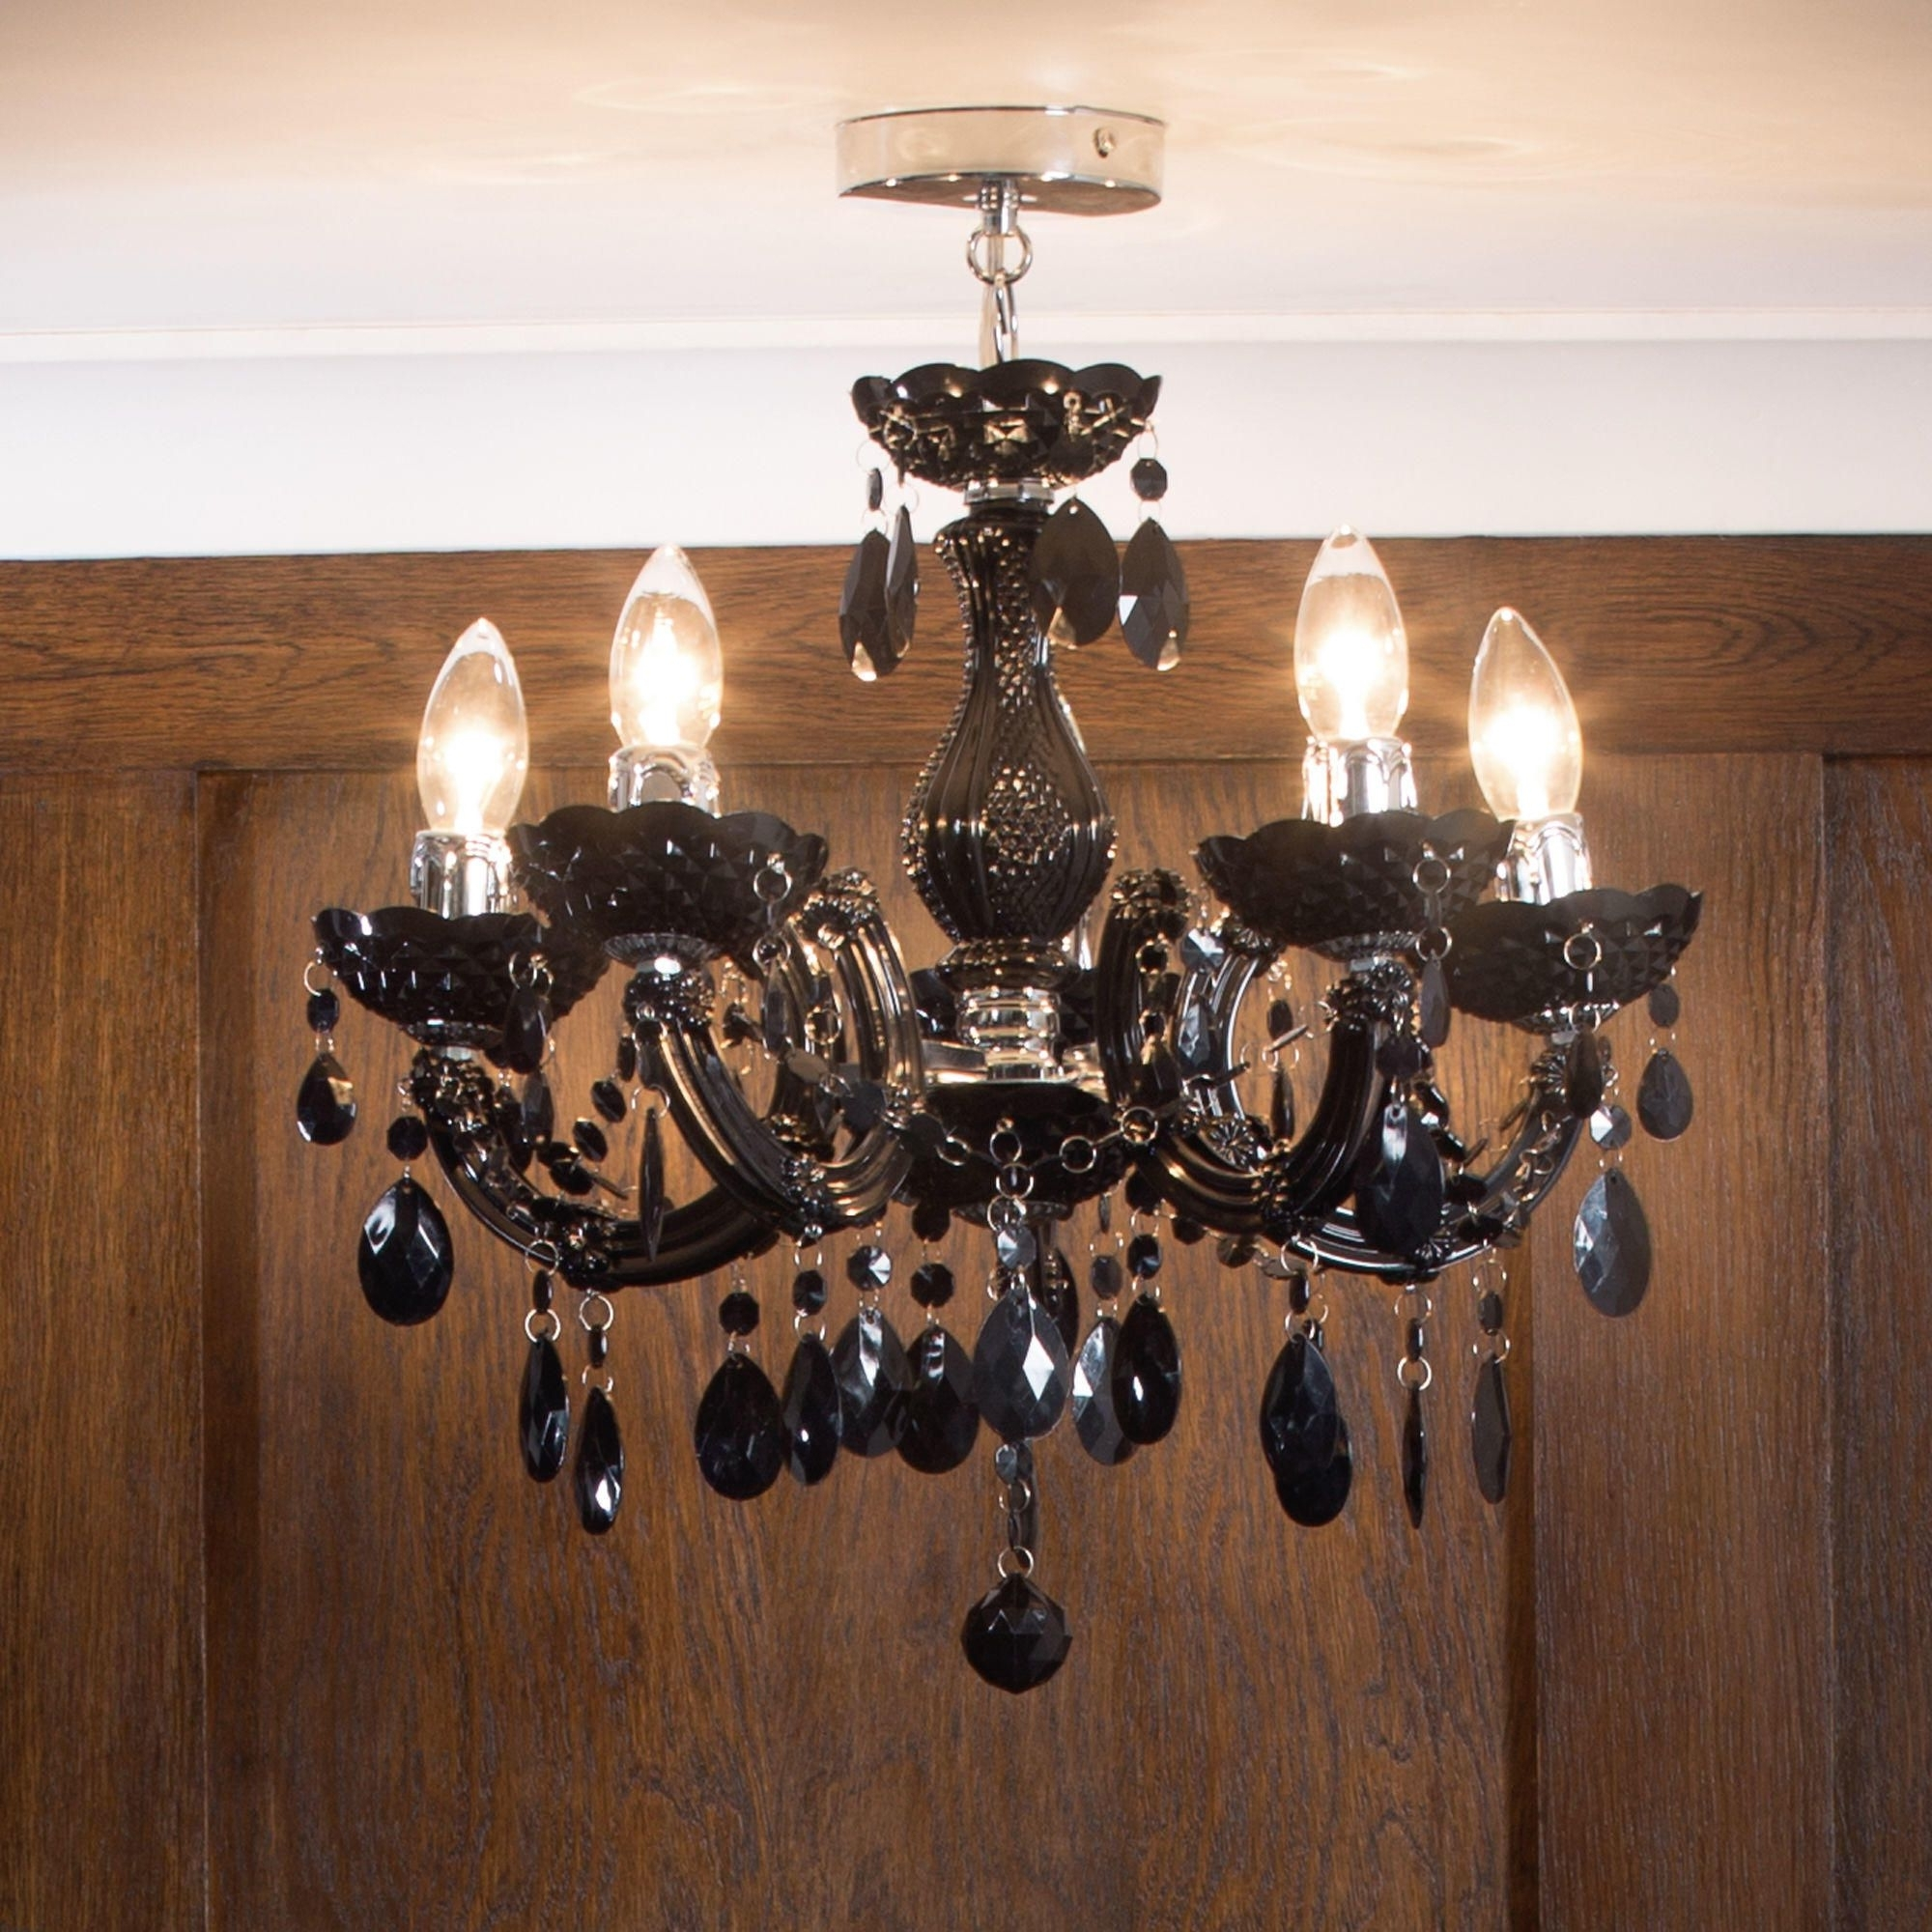 Chandelier For Low Ceiling With Newest Chandeliers For Low Ceilings – Litecraft (View 4 of 20)